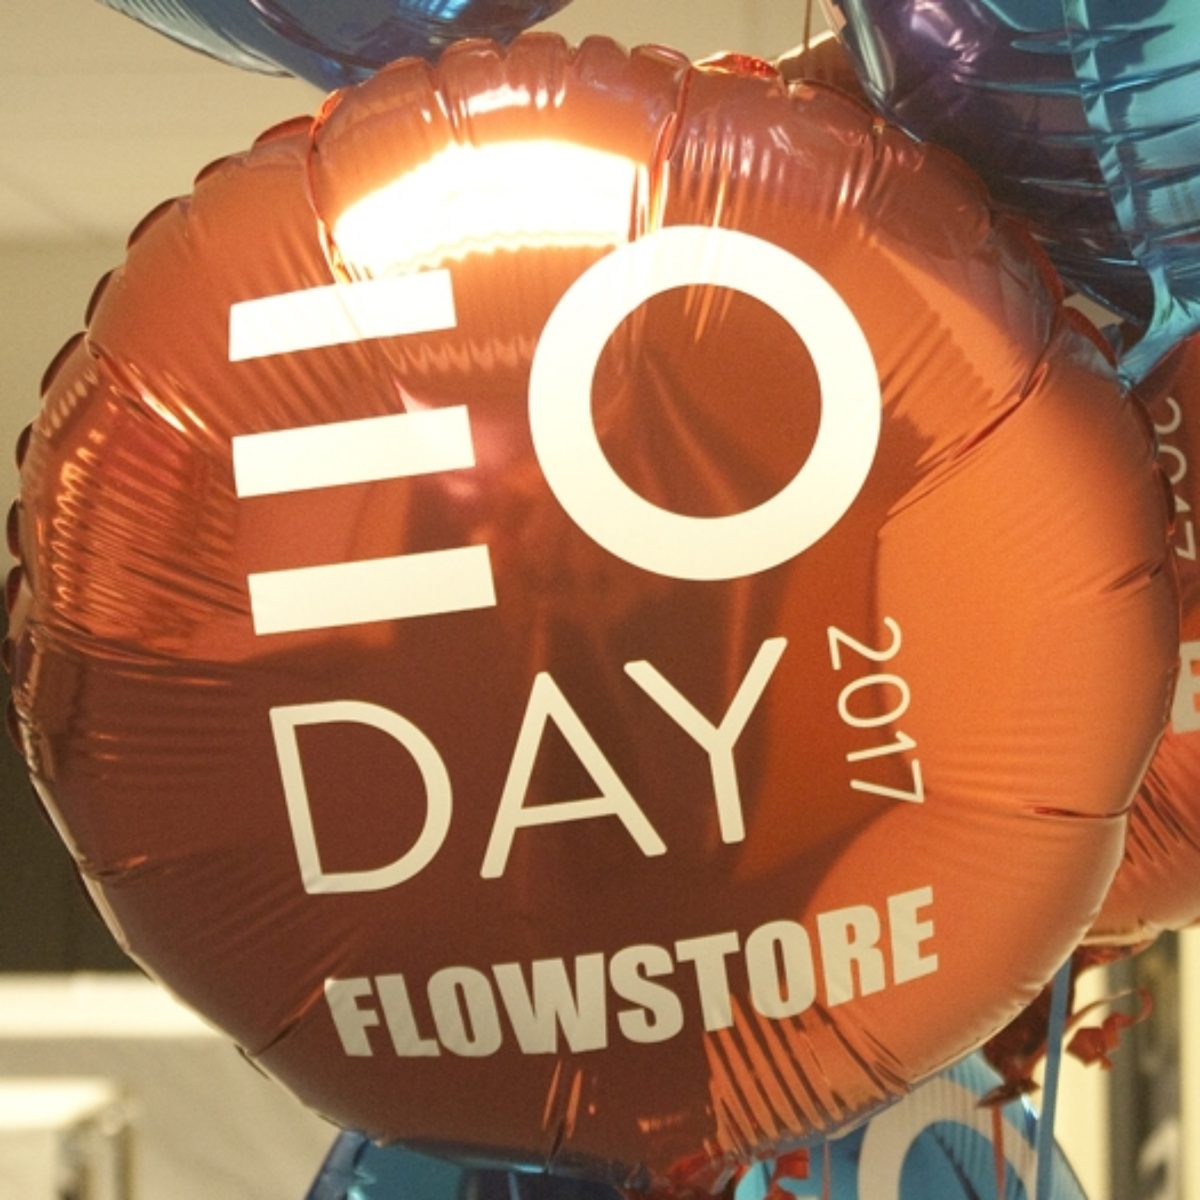 Flowstore Employee Owned2